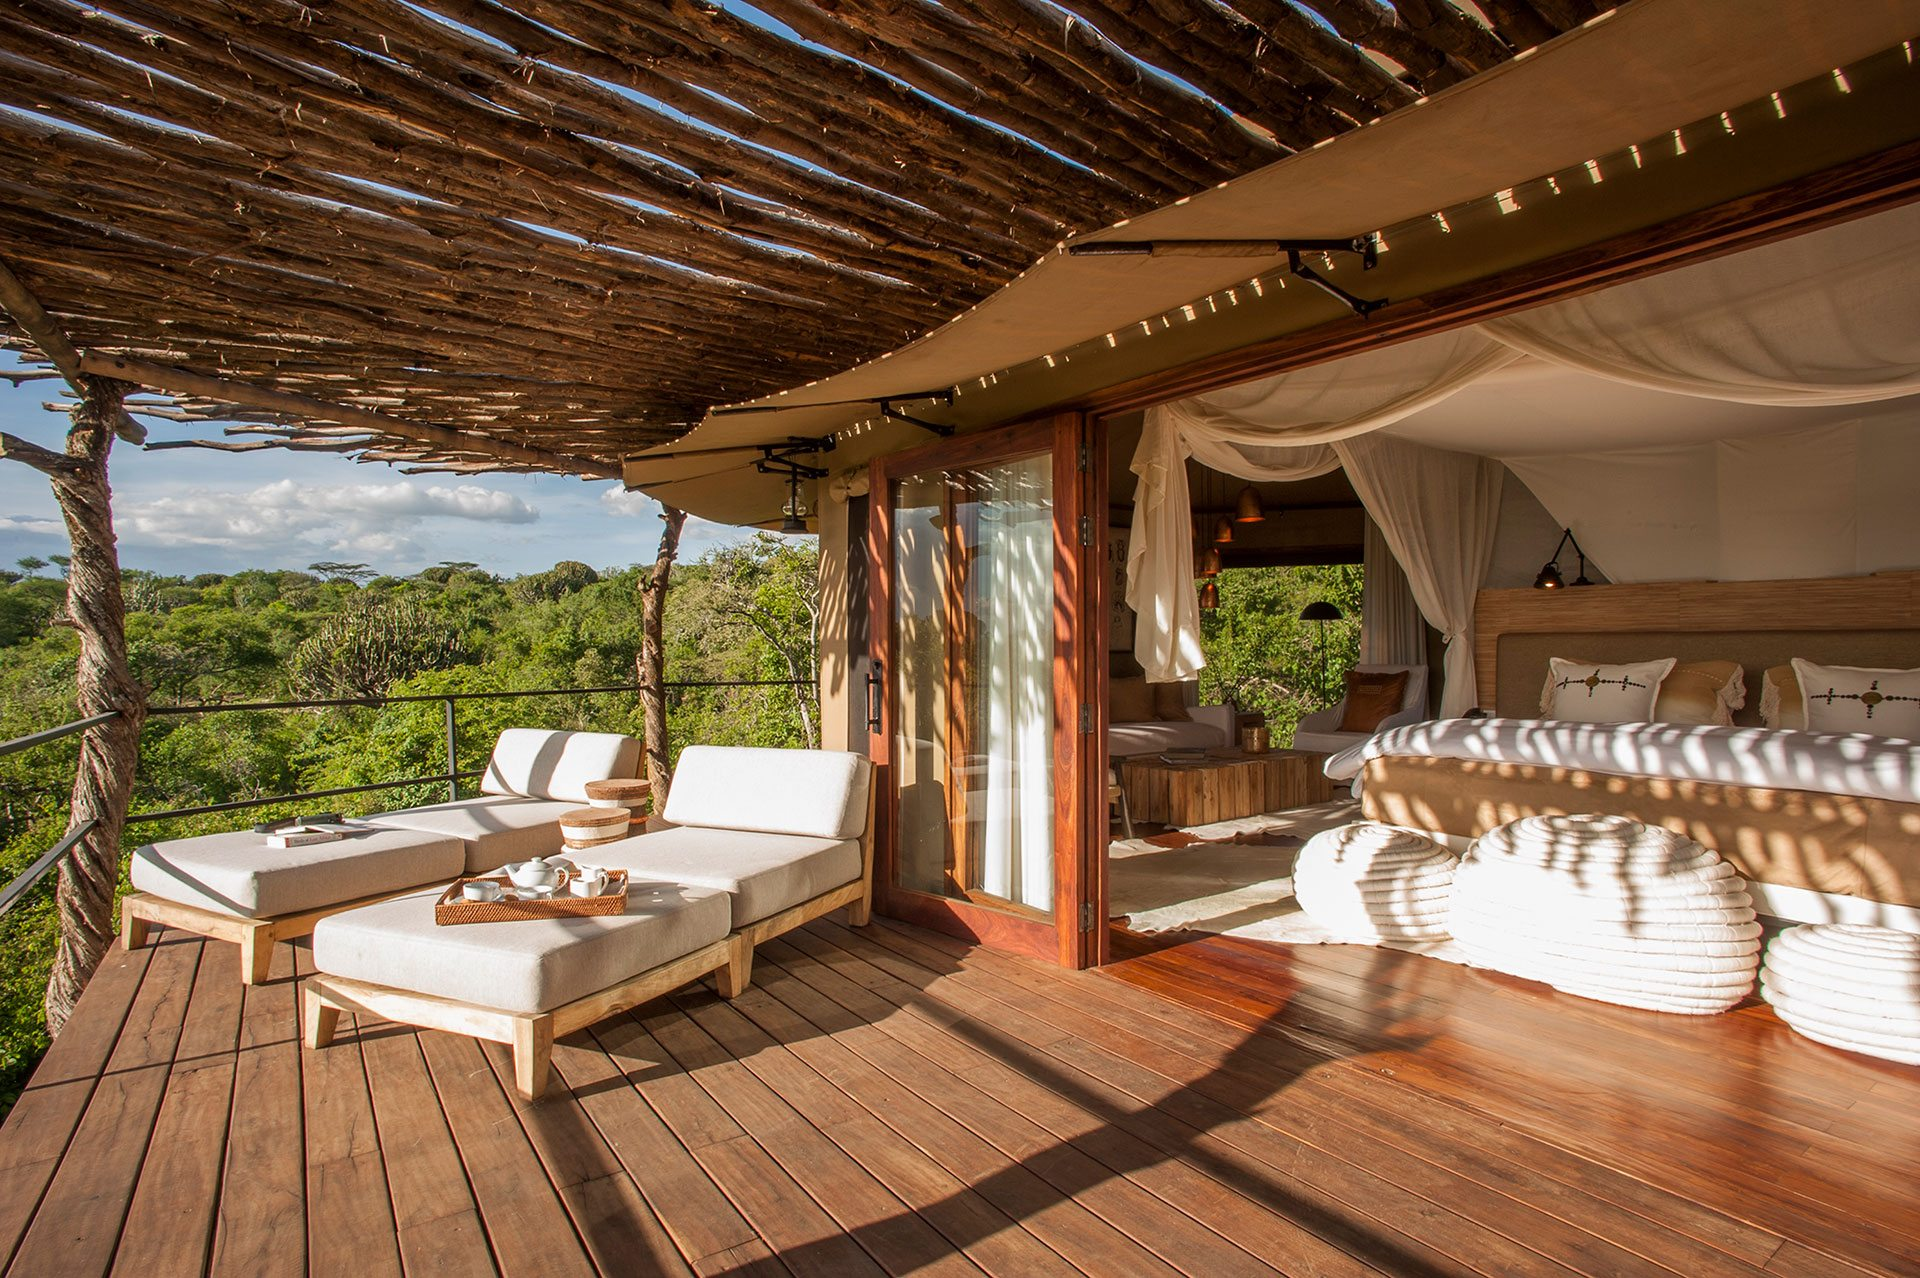 Legendary Mwiba Lodge